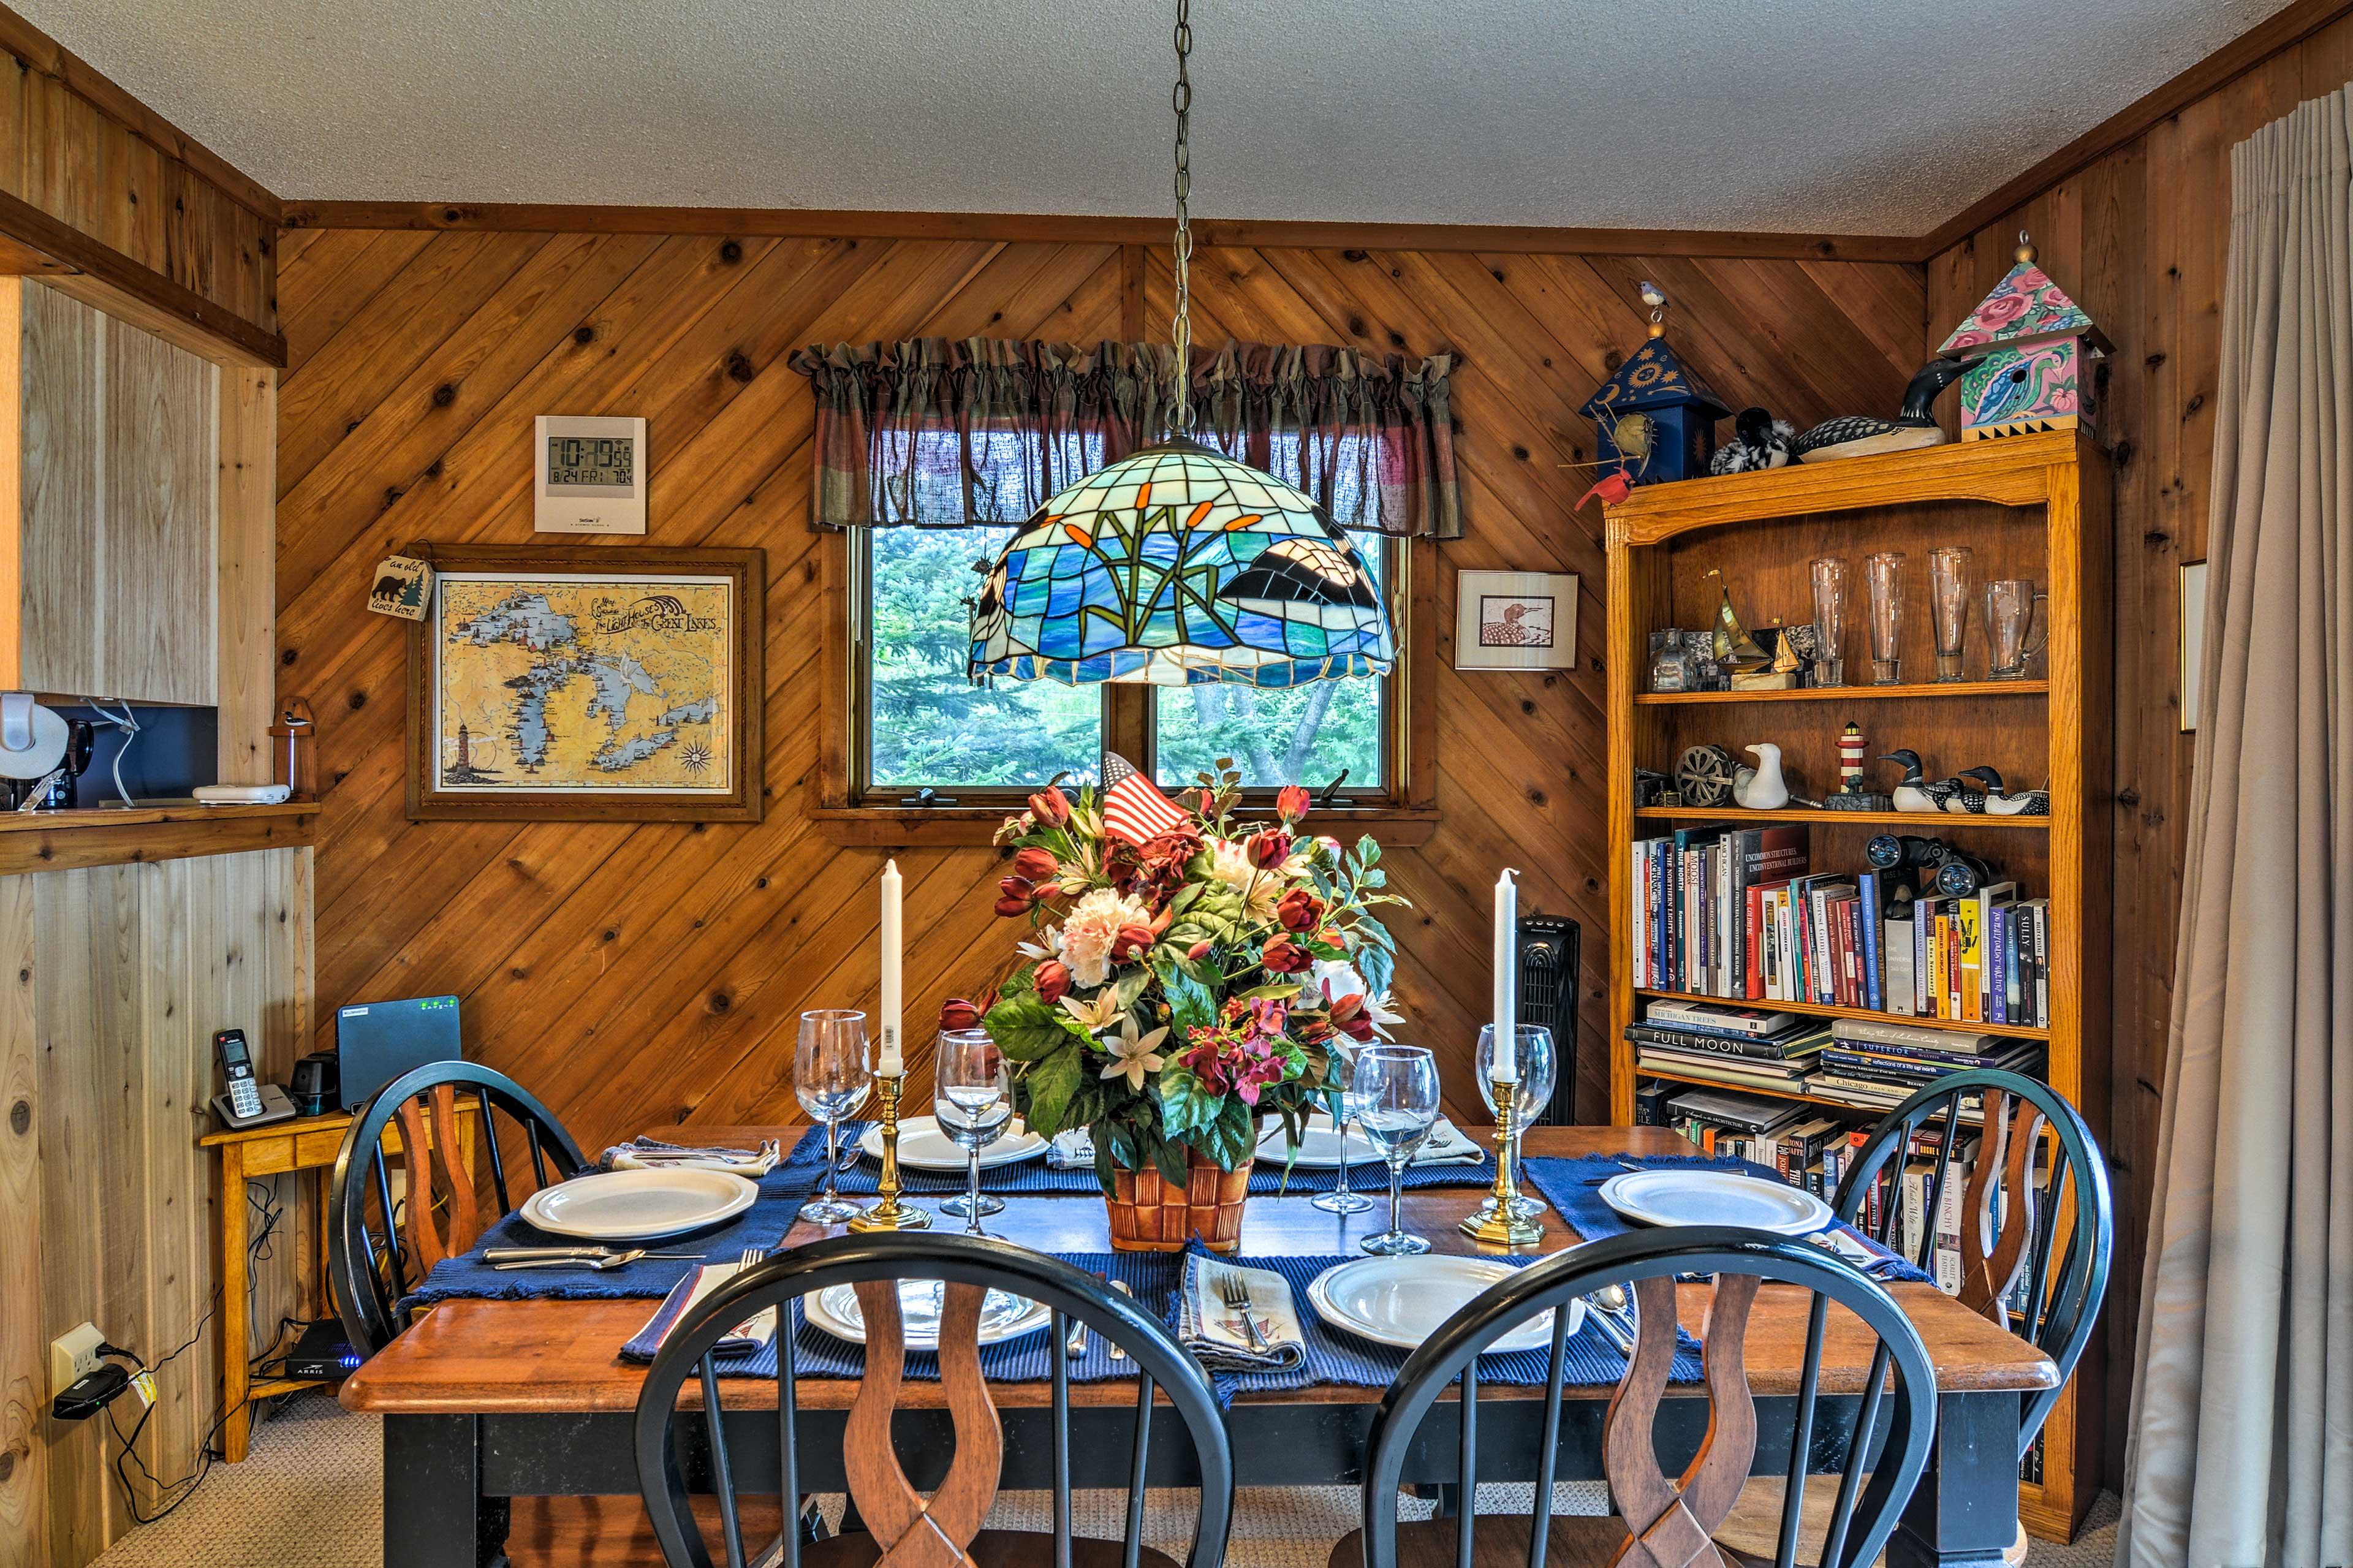 Gather around the 5-person dining table to enjoy your meals together.